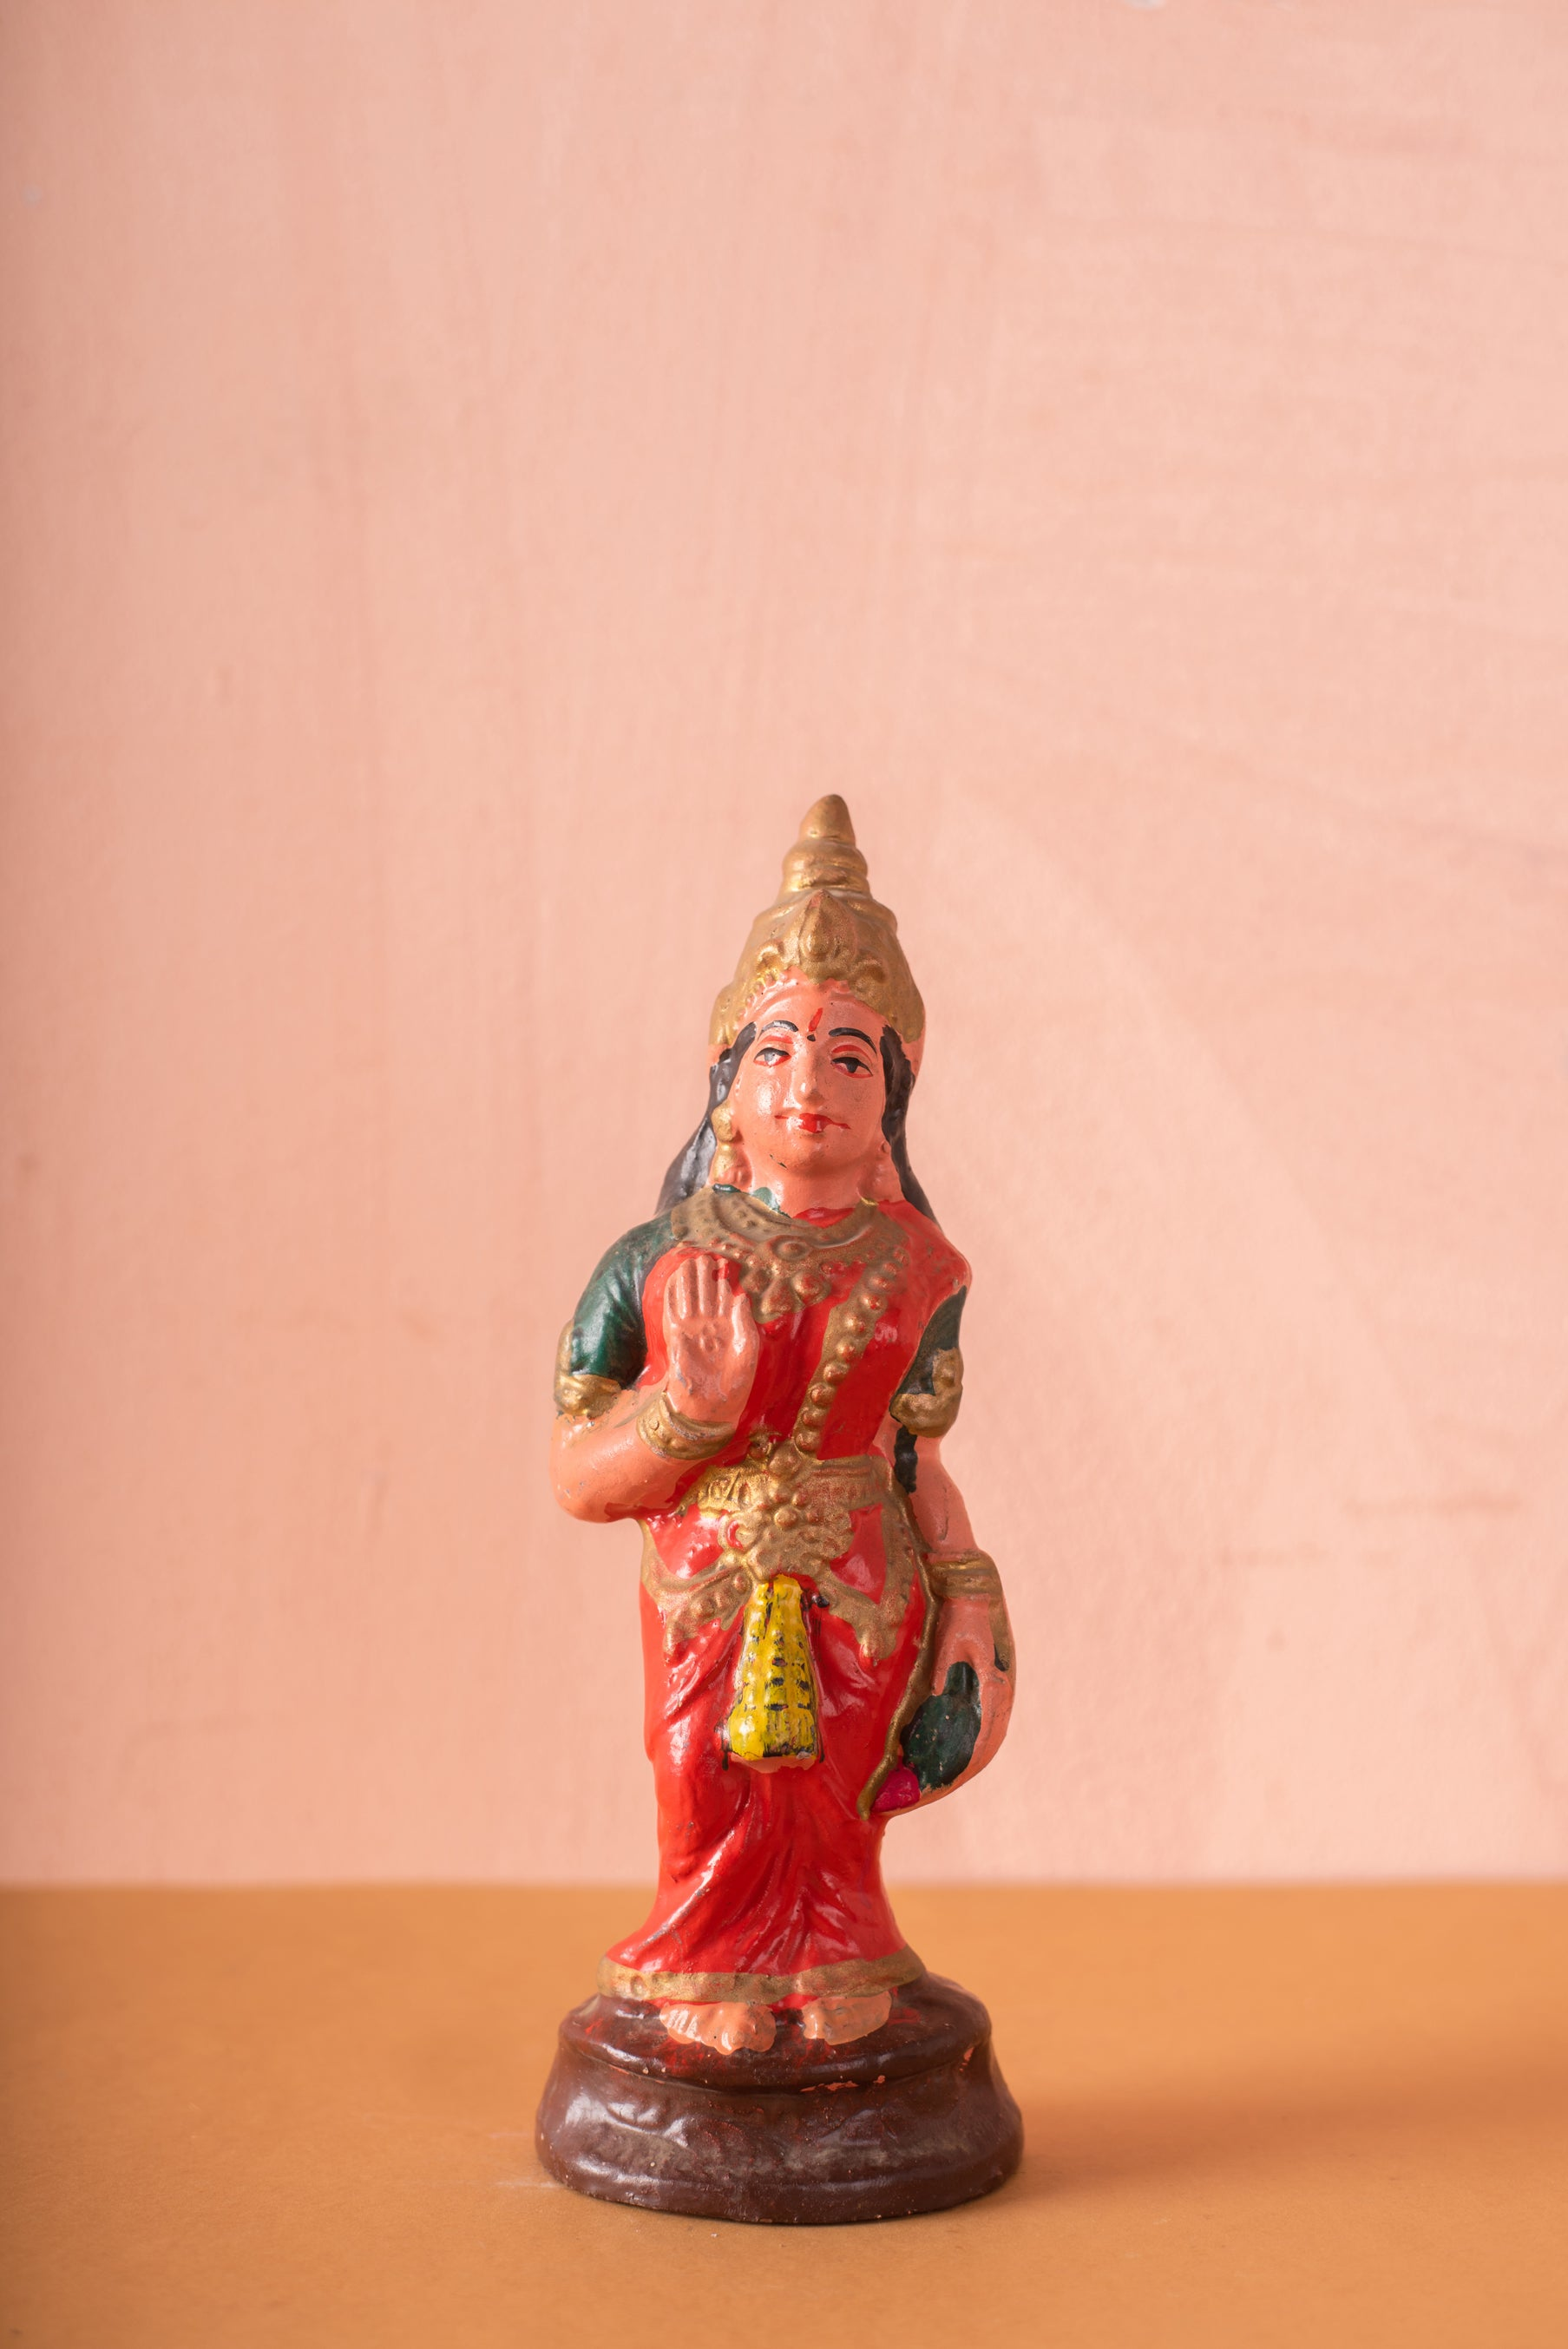 Vintage Indian Sacred Clay Statue - 95